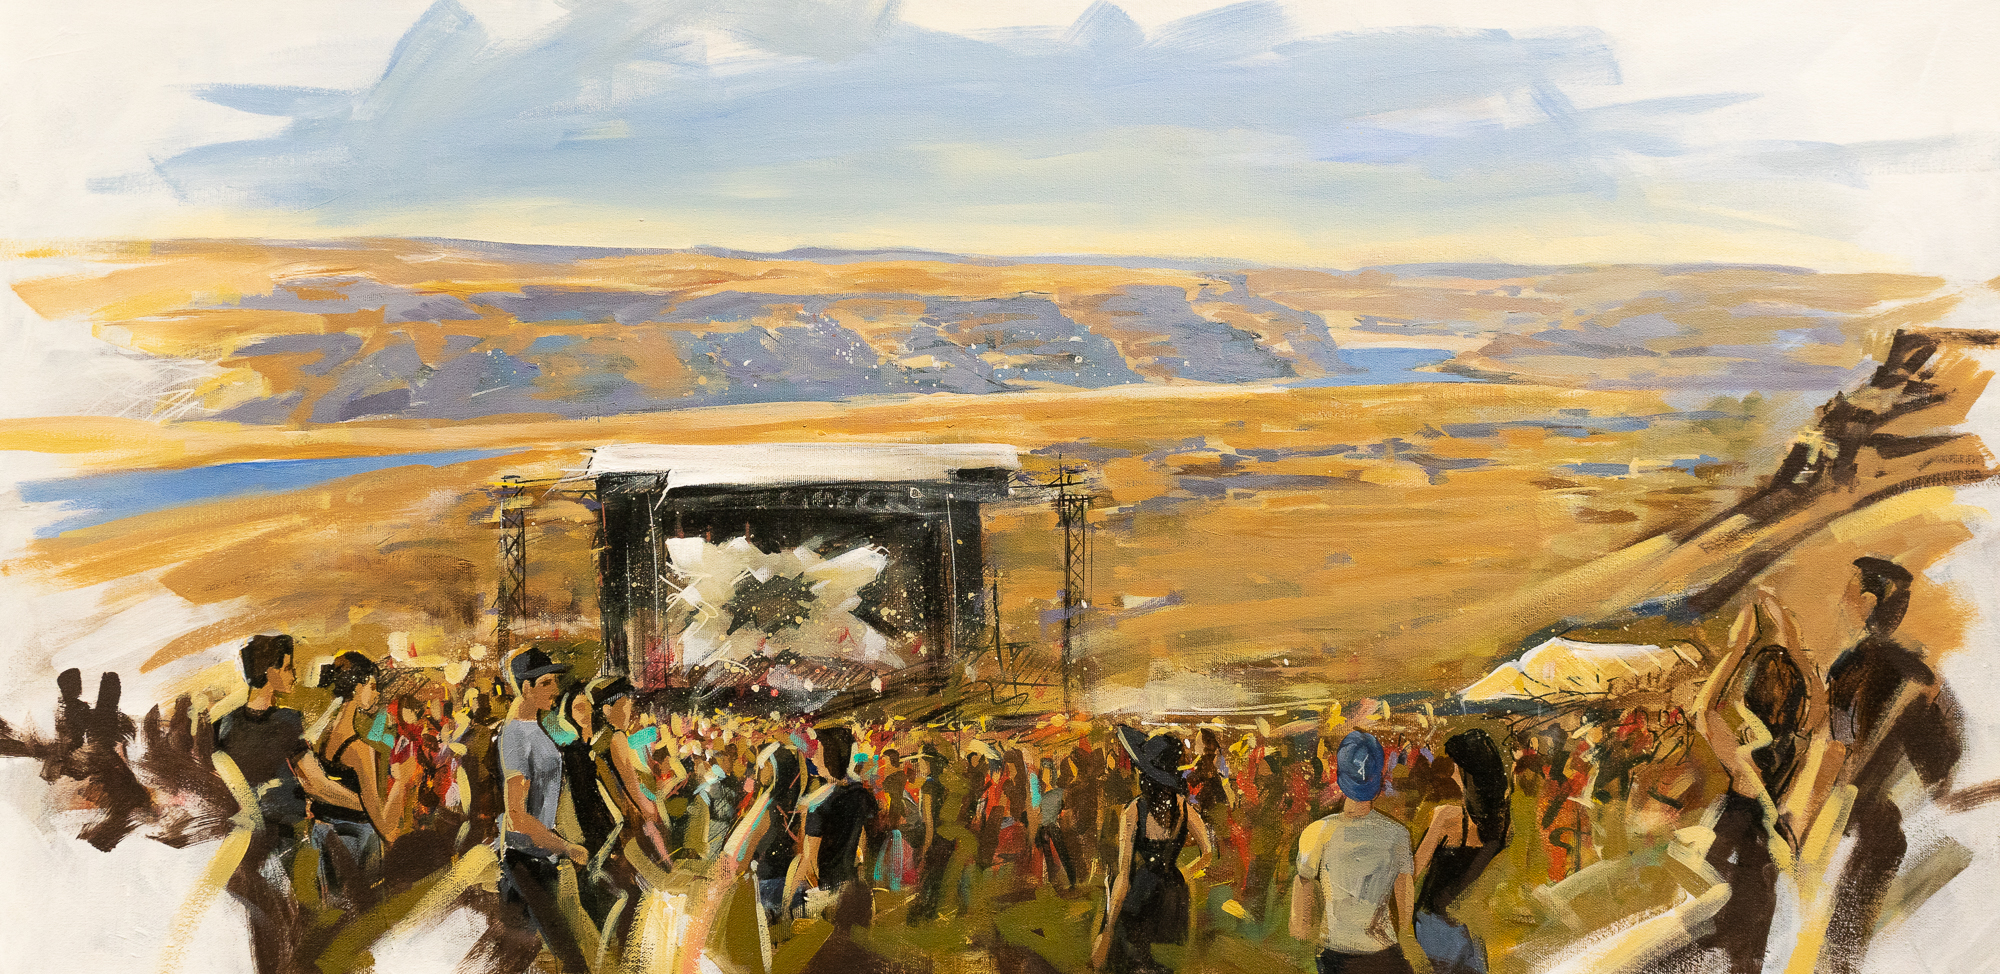 Copy of dmb at the gorge 2018 day 3.jpg